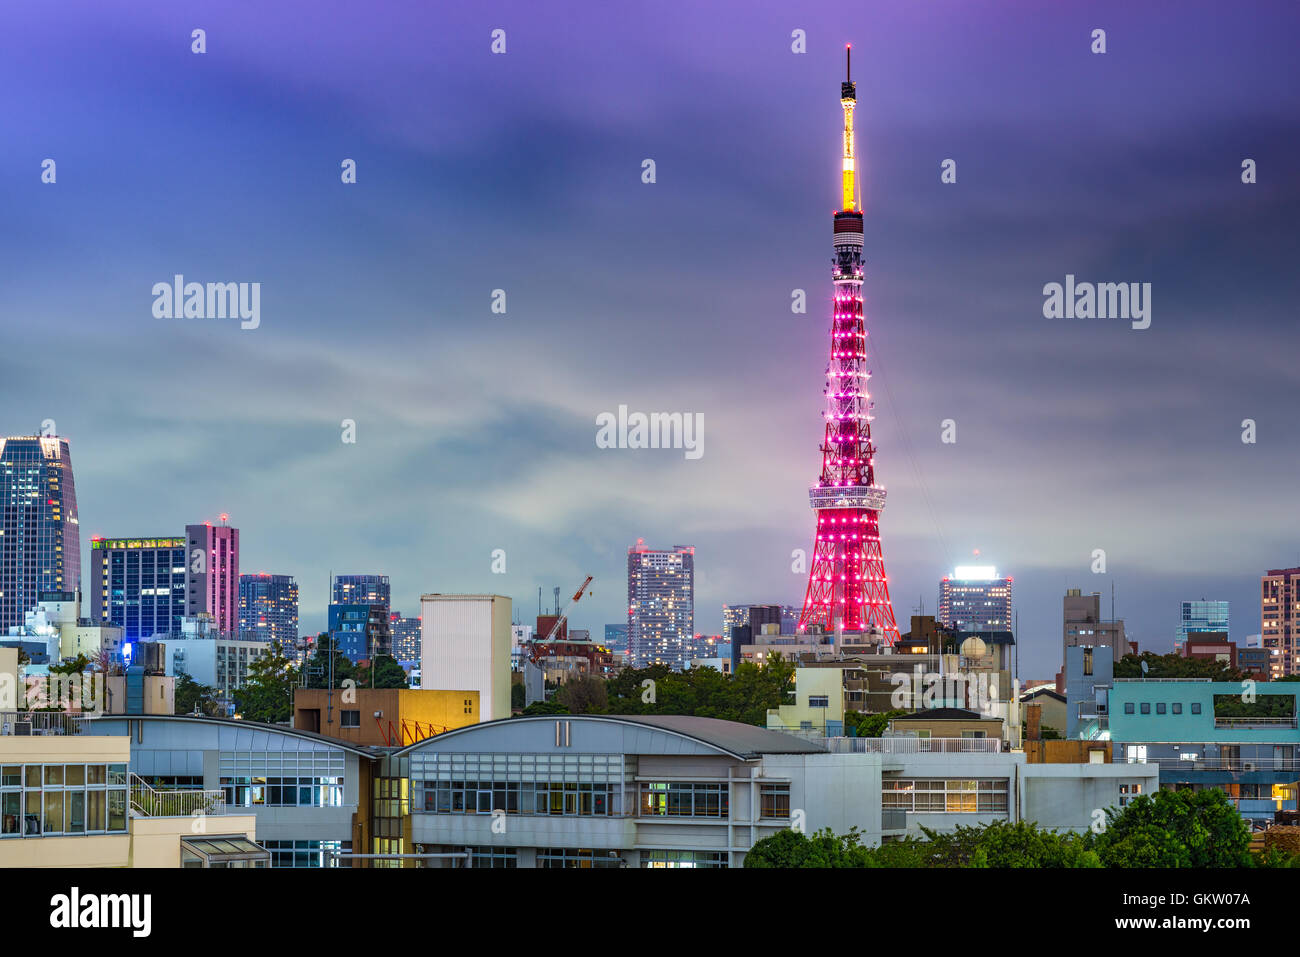 Tokyo, Japan skyline with Tokyo Tower during special lighting. - Stock Image